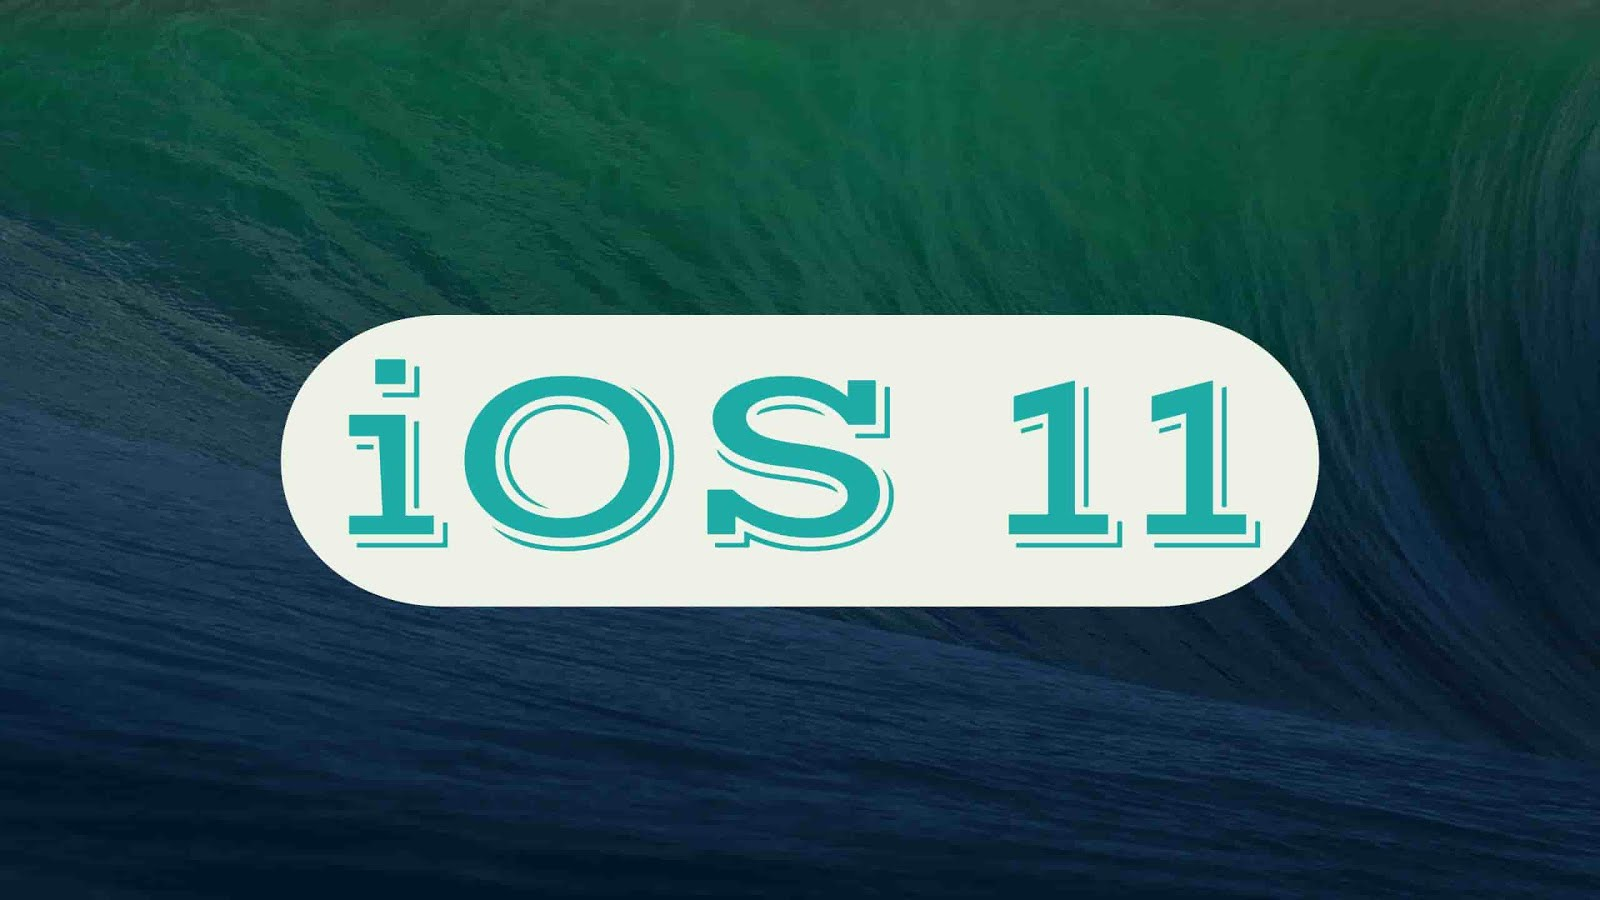 iOS 11.0.2 download is available via an over-the-air update or through iTunes.Here's a iOS 11.0.2 IPSW download link for iPhone/iPad/iPod touch.